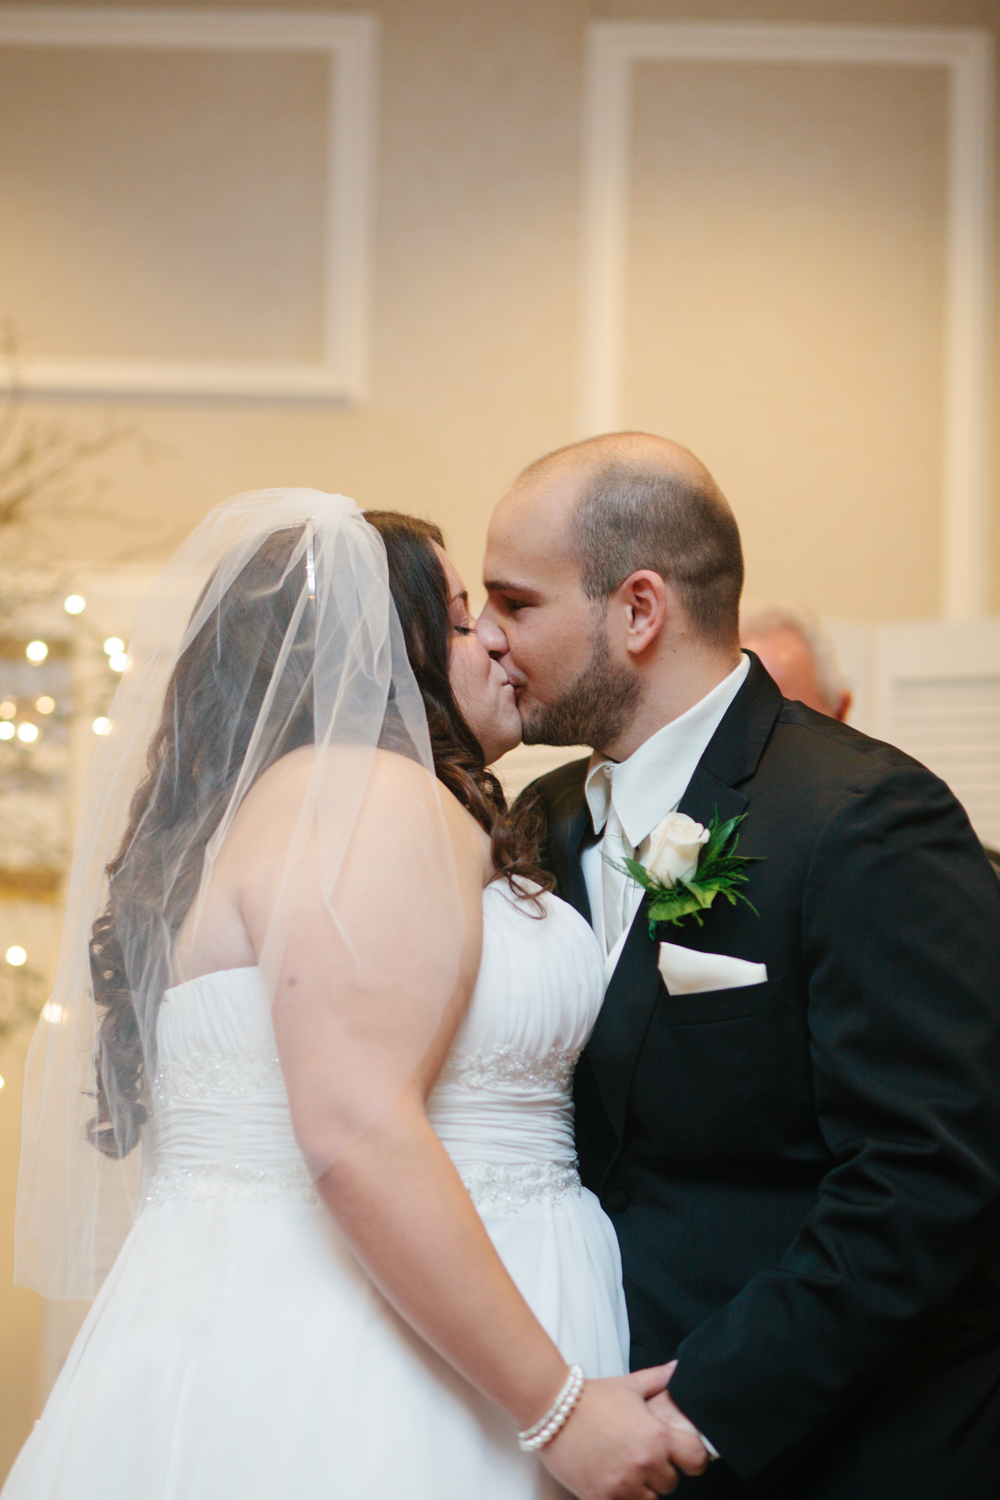 The first kiss as a married couple!